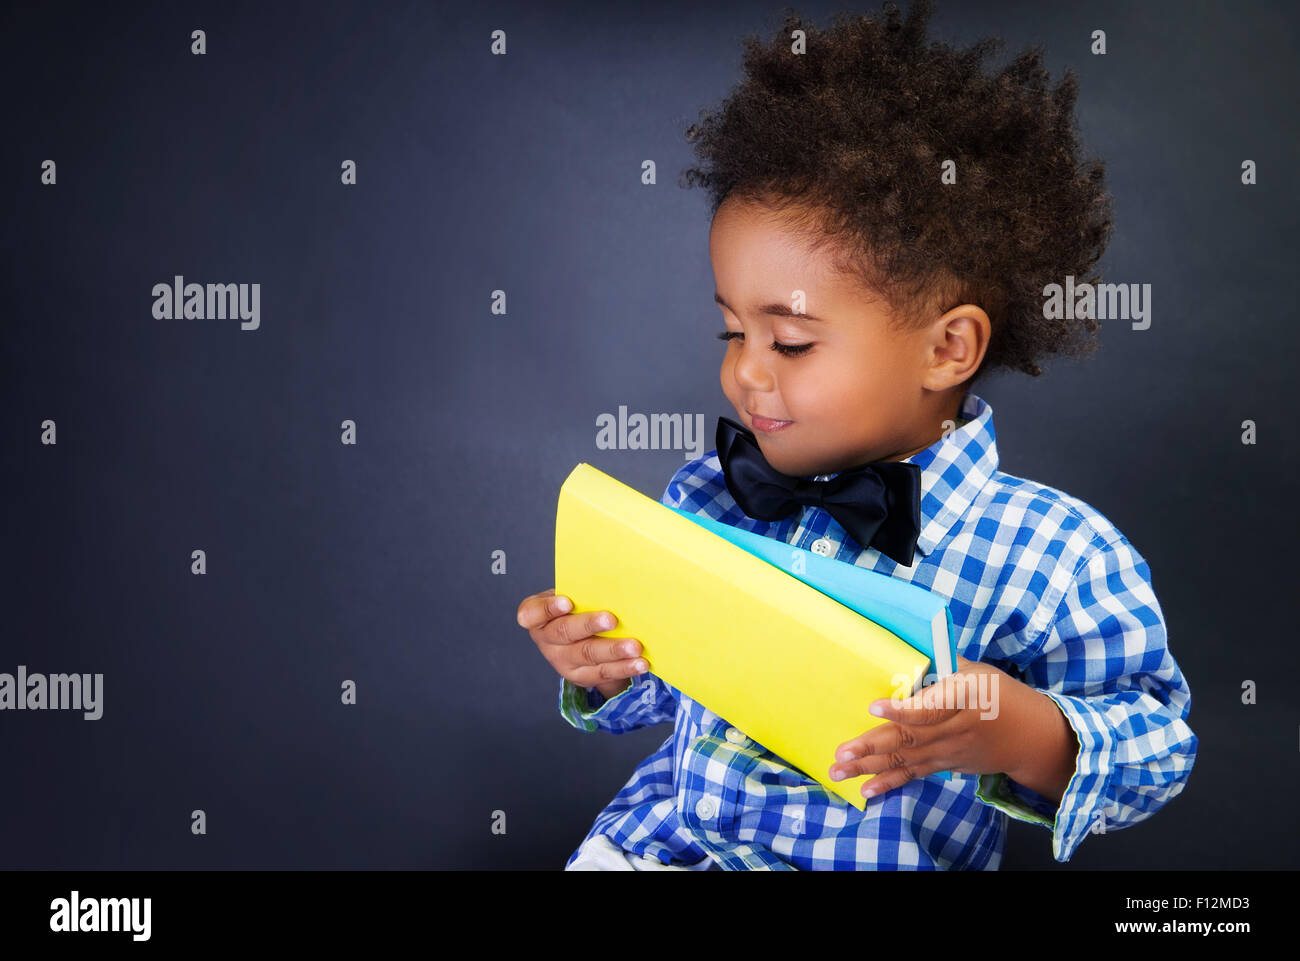 Cute little schoolkid with books in hands over blackboard background, preparing to go to first grade - Stock Image